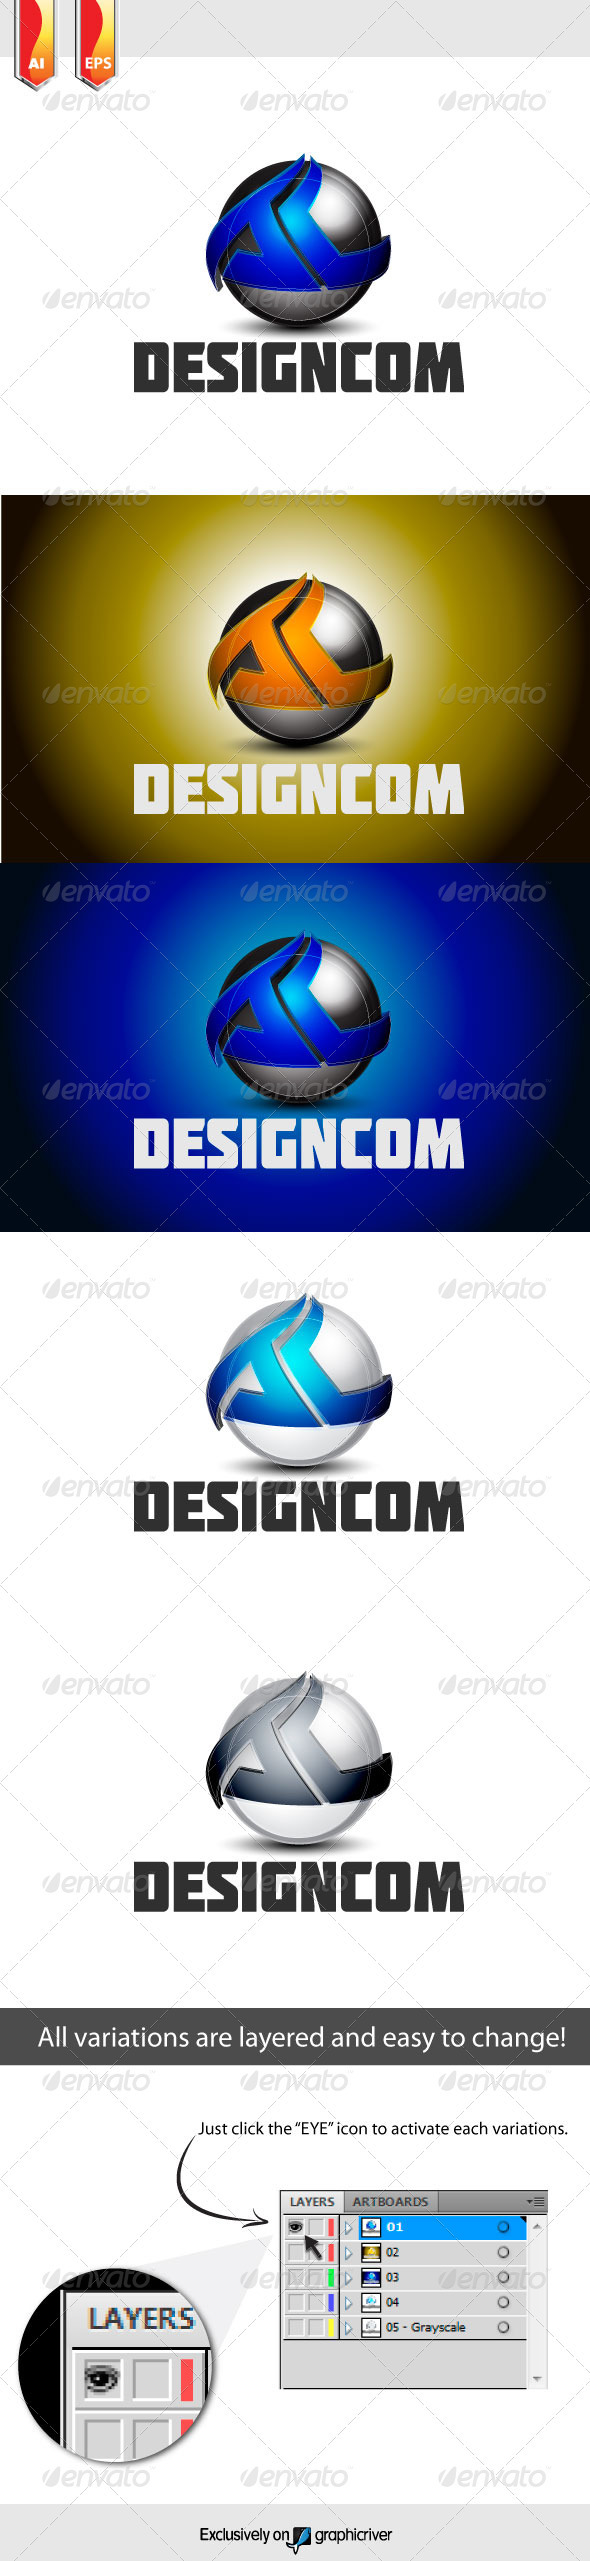 DesignCom Logo - Abstract Logo Templates